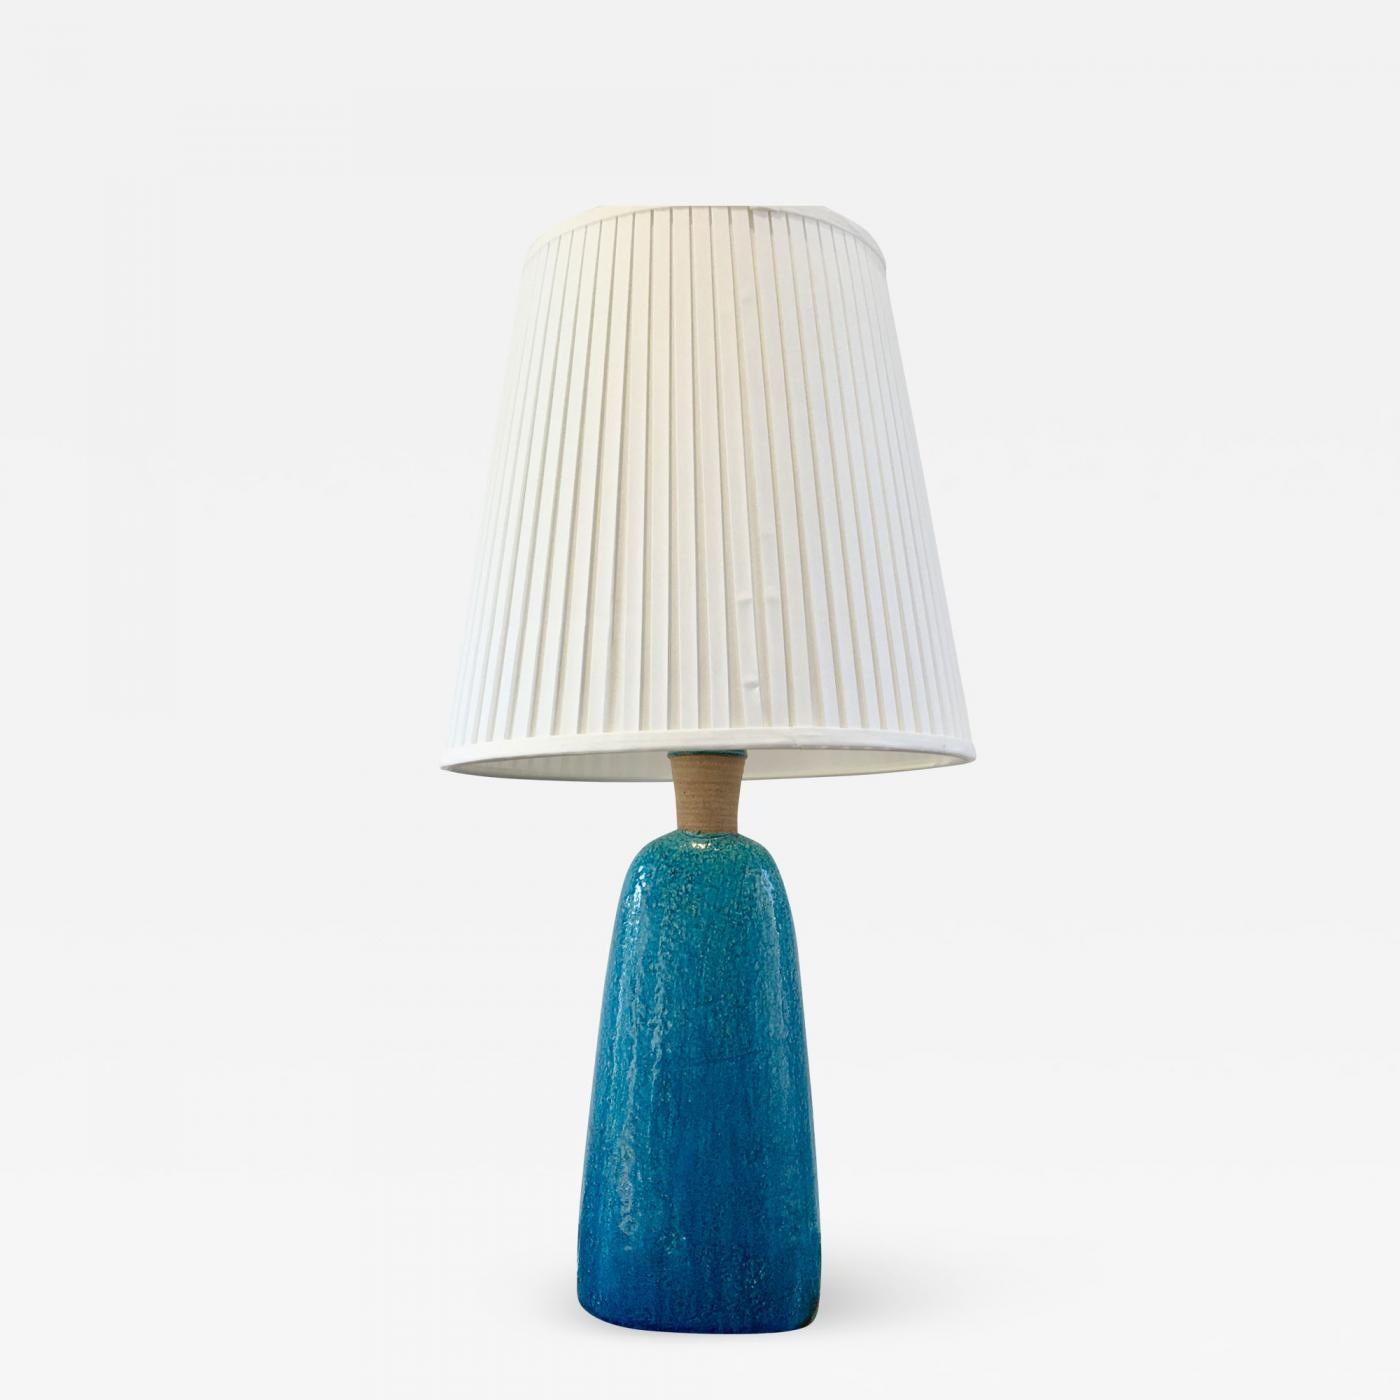 Nils Kahler Large 1950s Turquoise Midcentury Table Lamp By Nils